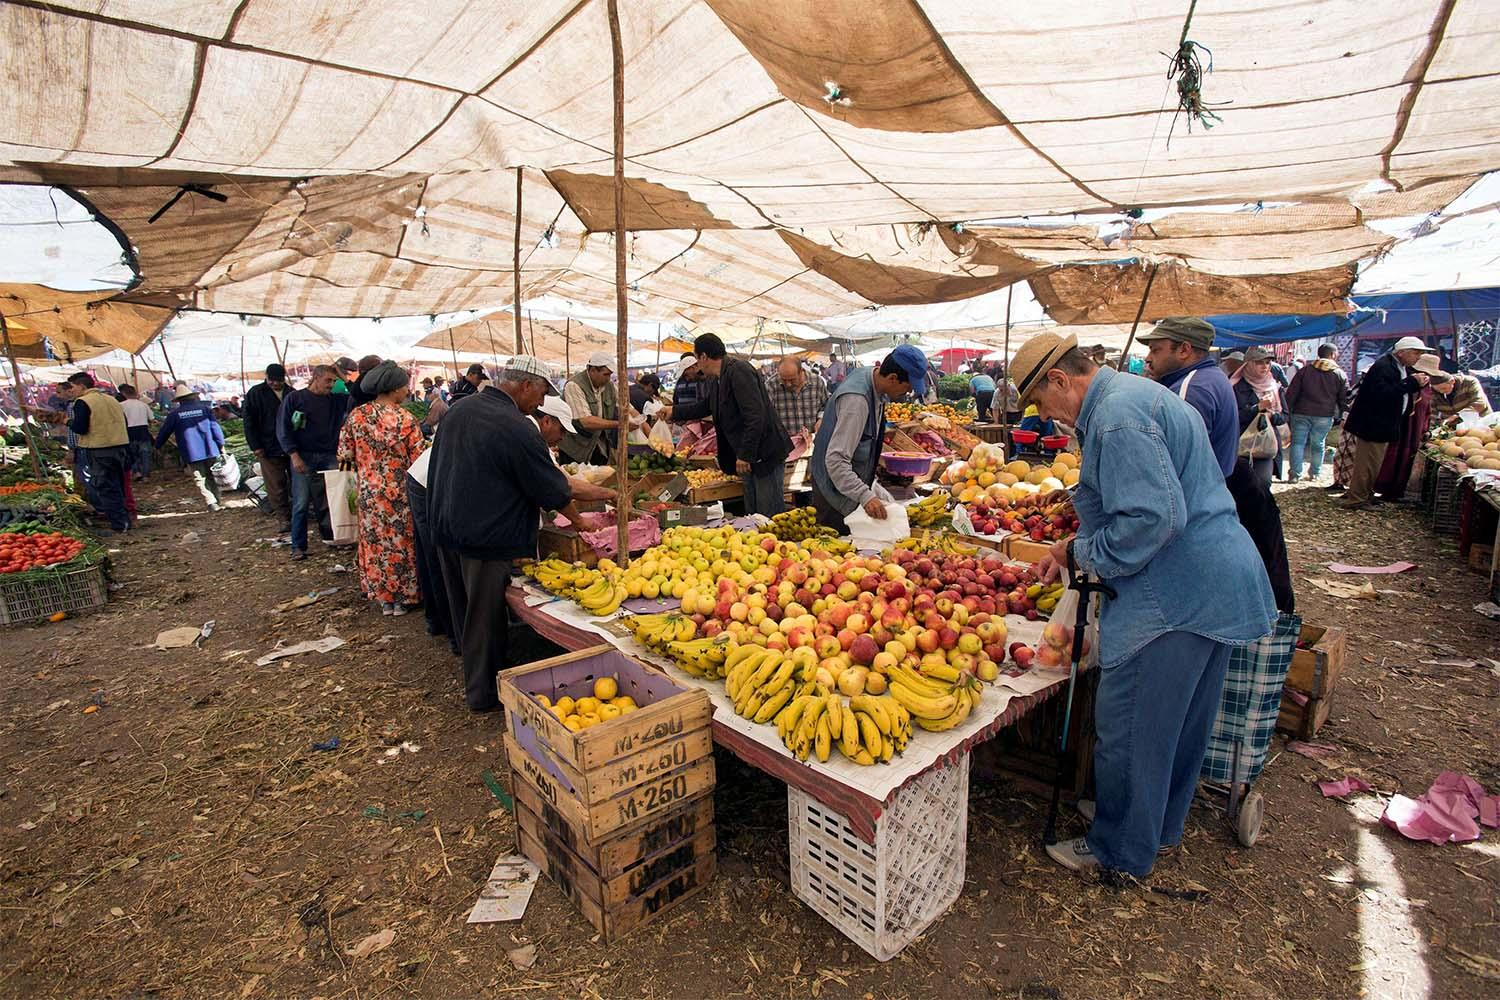 Moroccans' purchasing power is in need of a major boost.